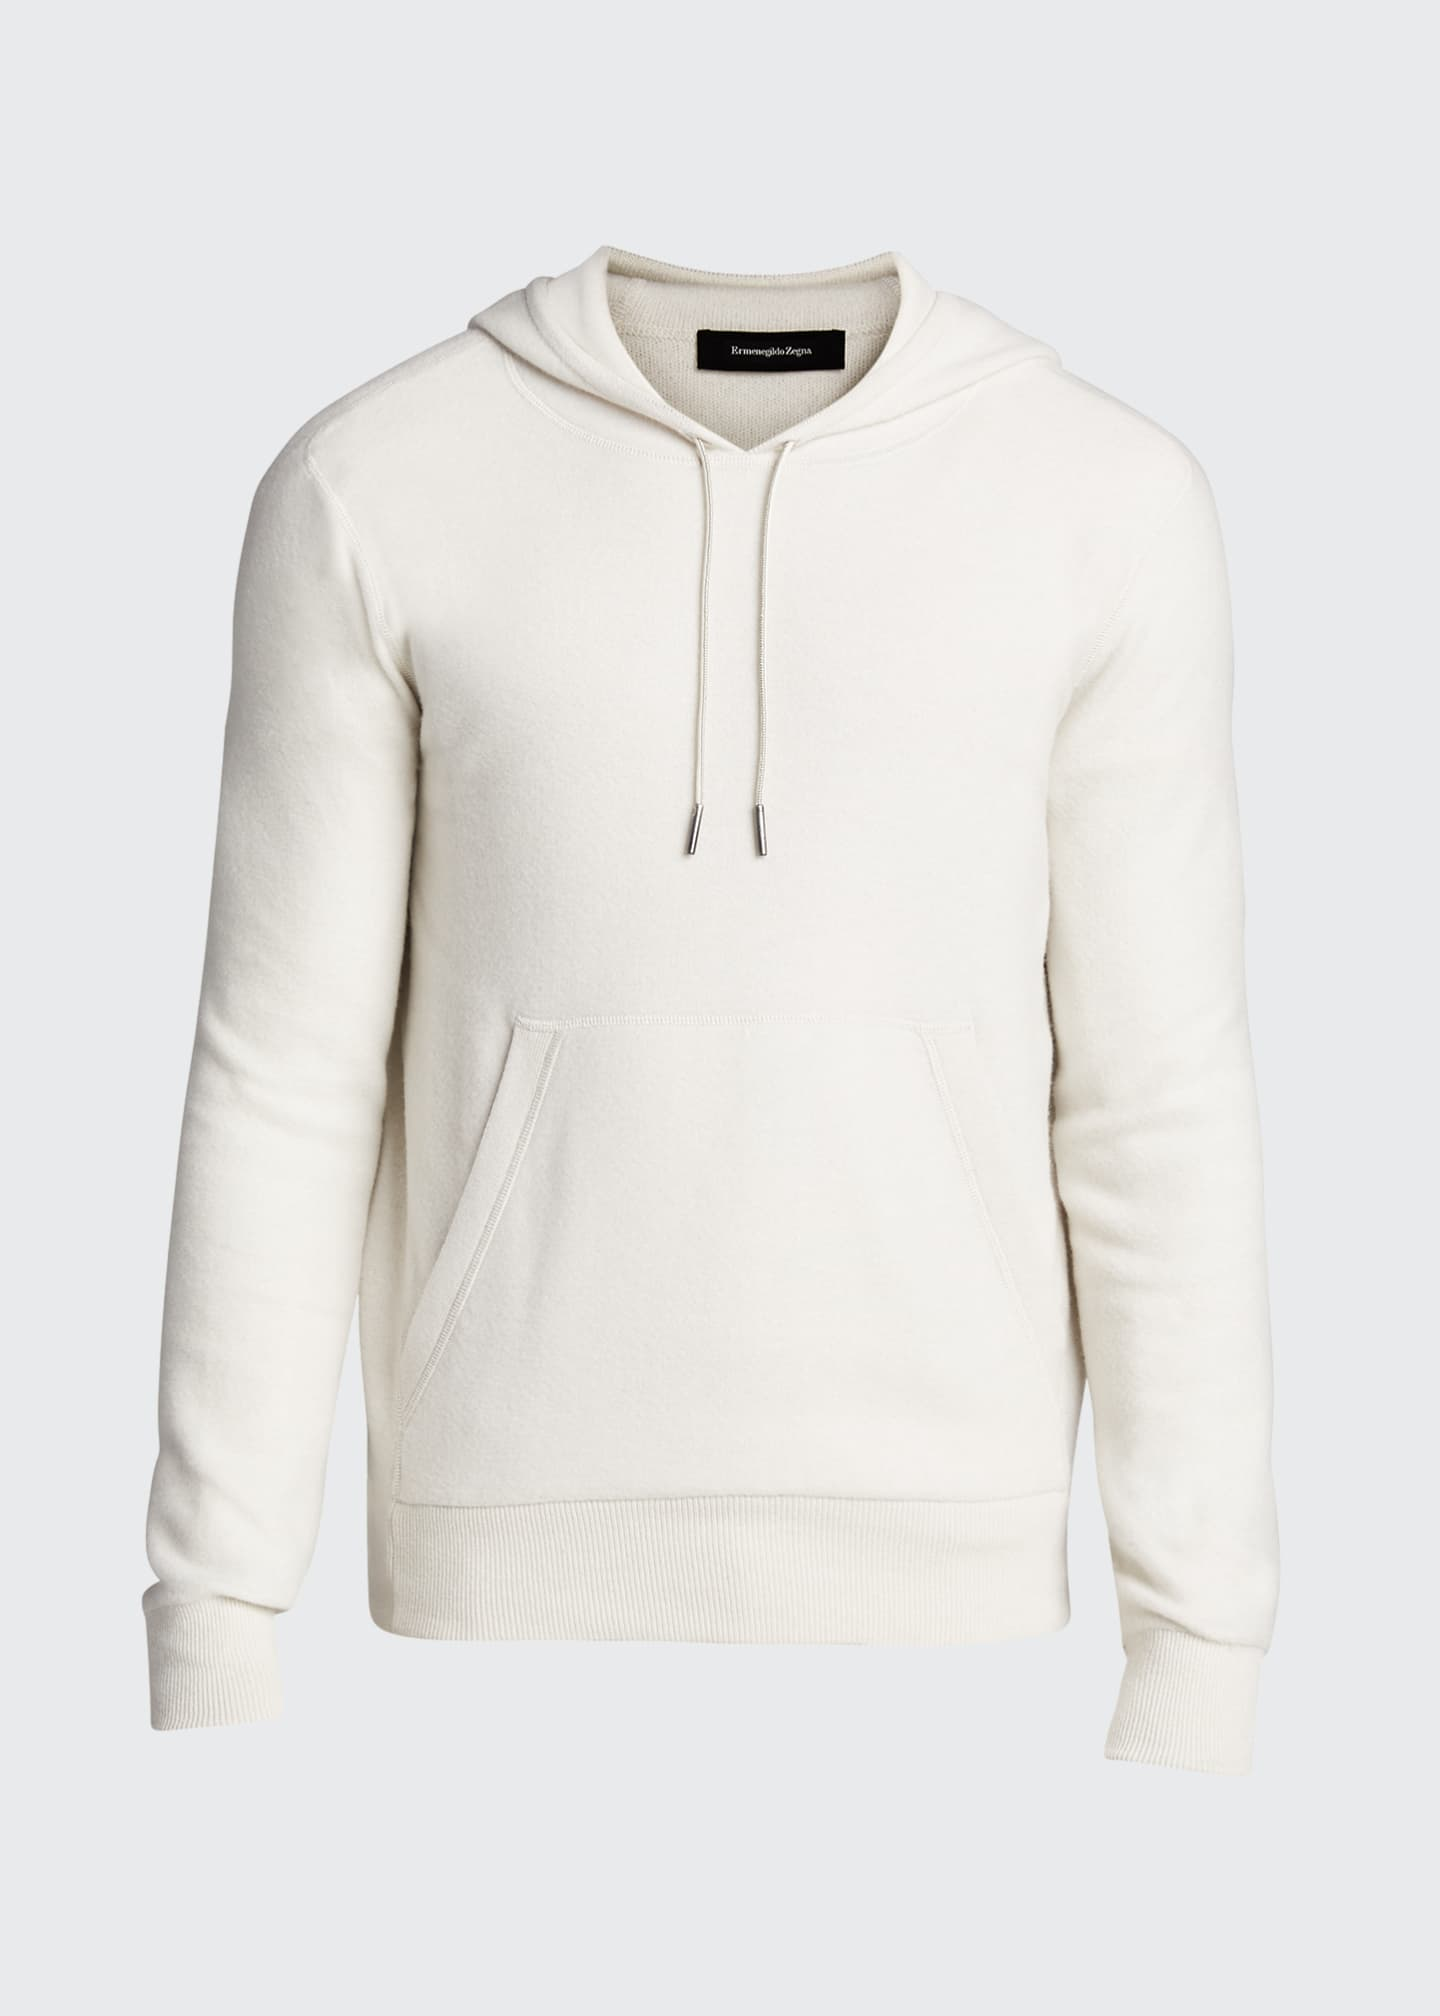 Image 5 of 5: Men's Solid Cashmere Hoodie Sweater